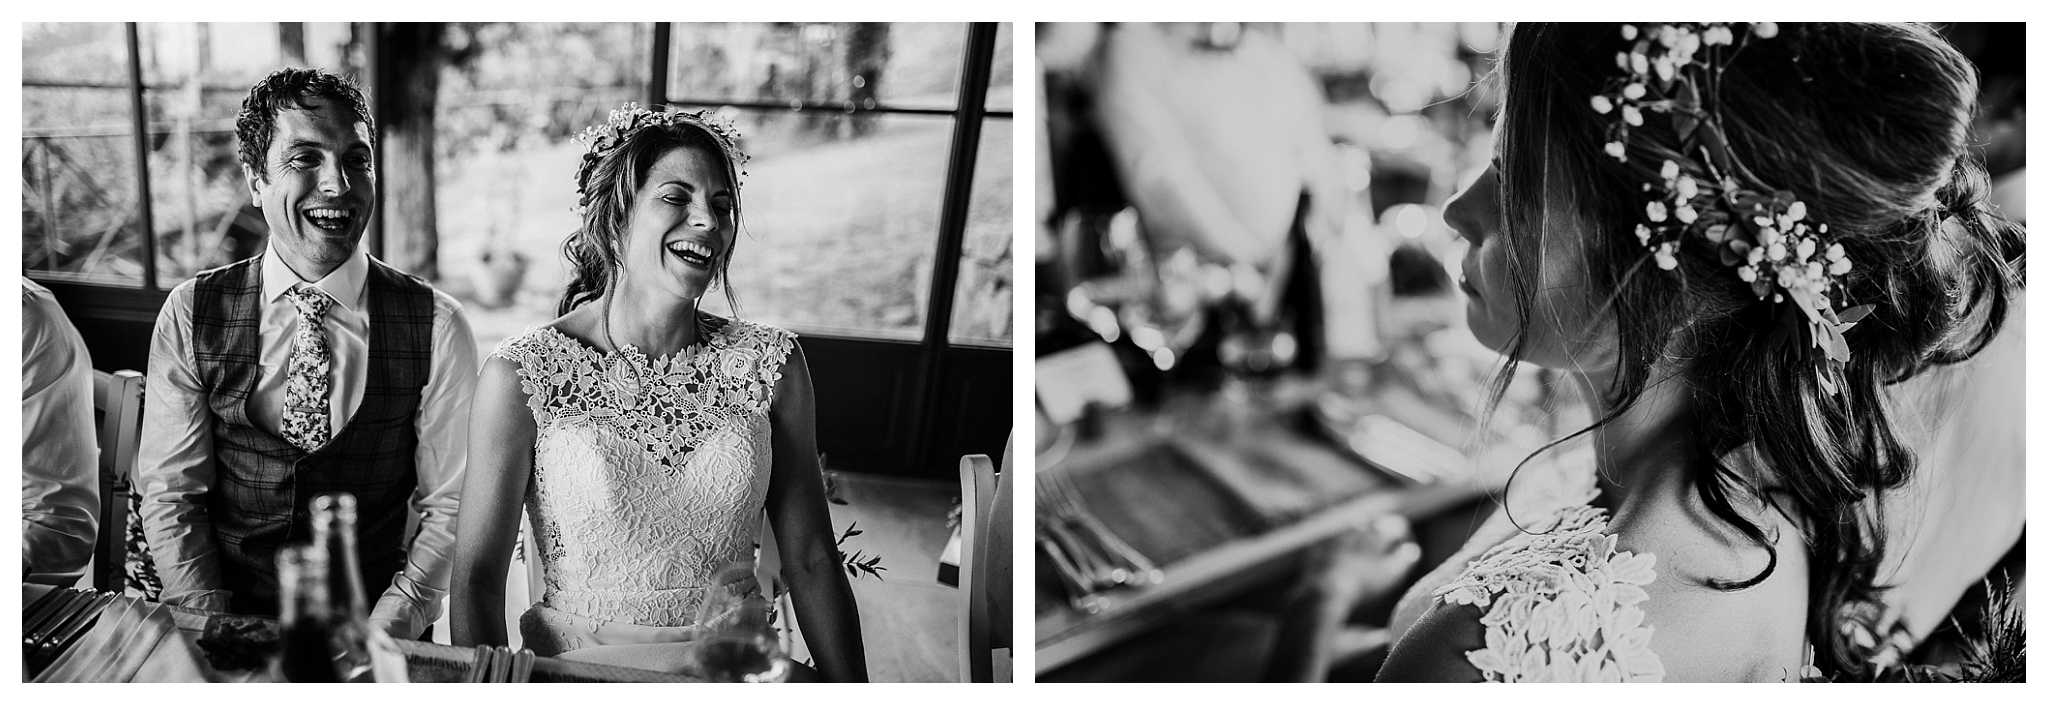 Smiles and laughs at wedding dinner in Italy